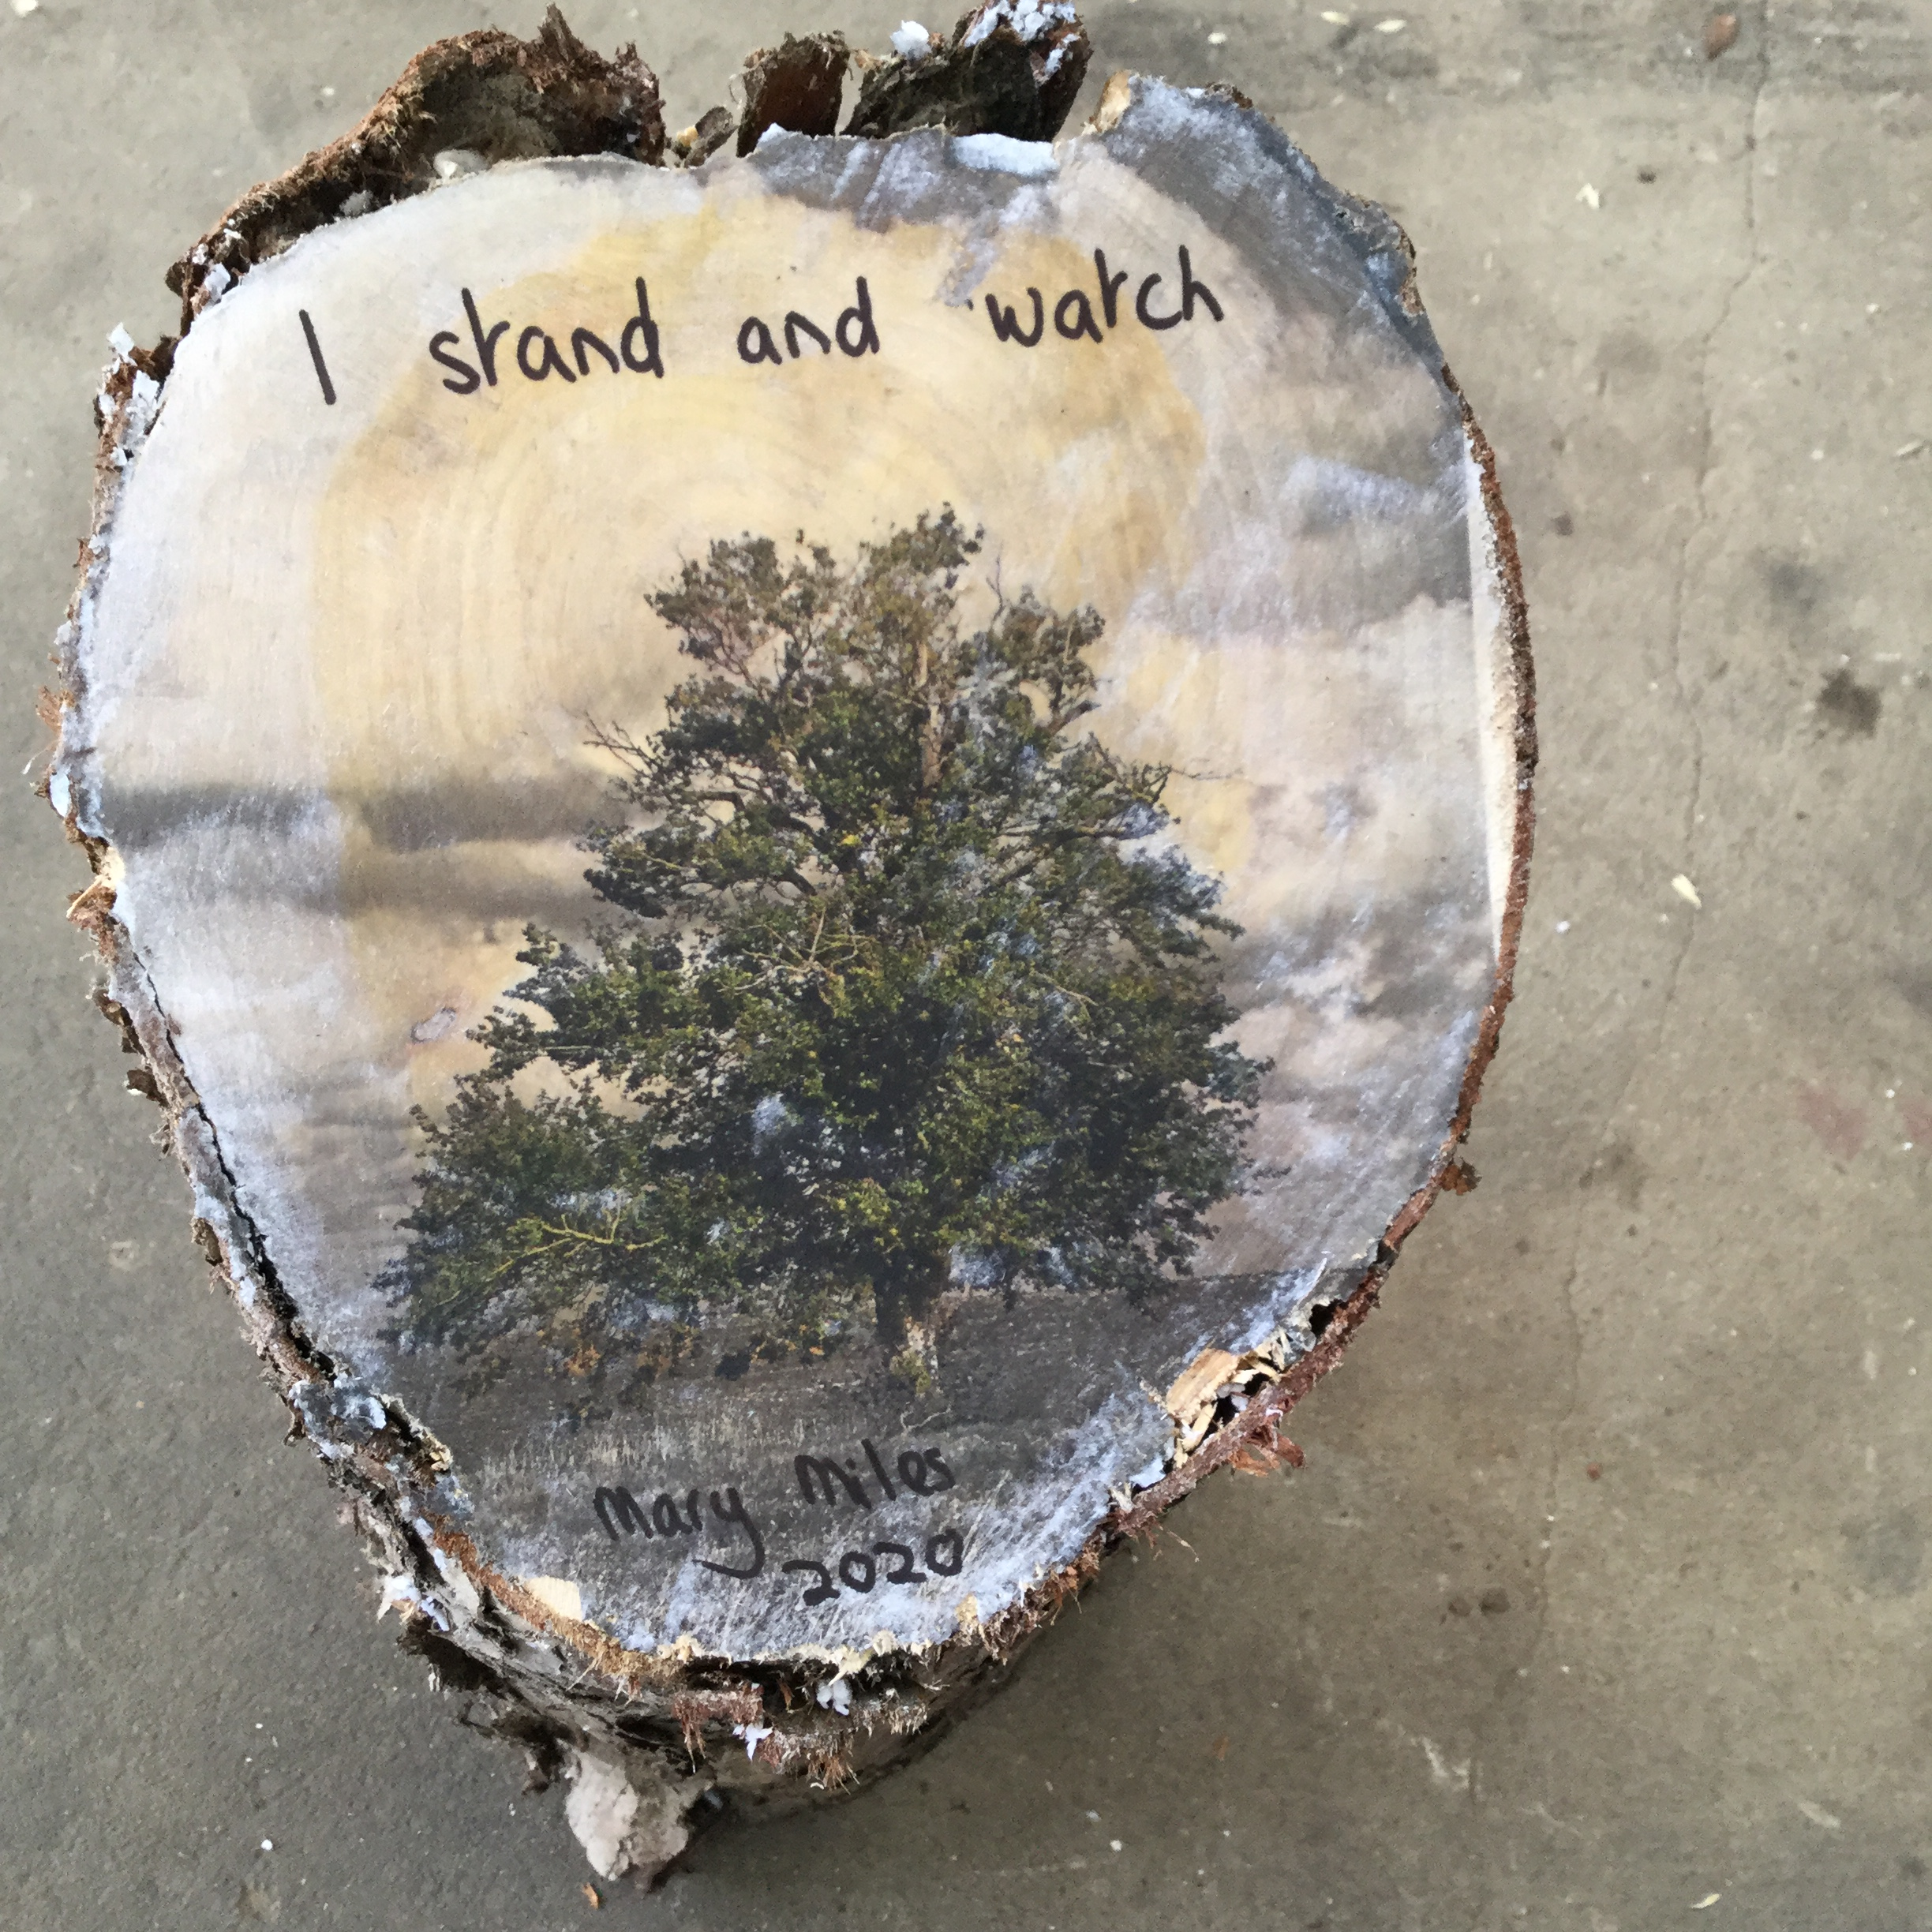 An image of a tree with the caption I stand and watch